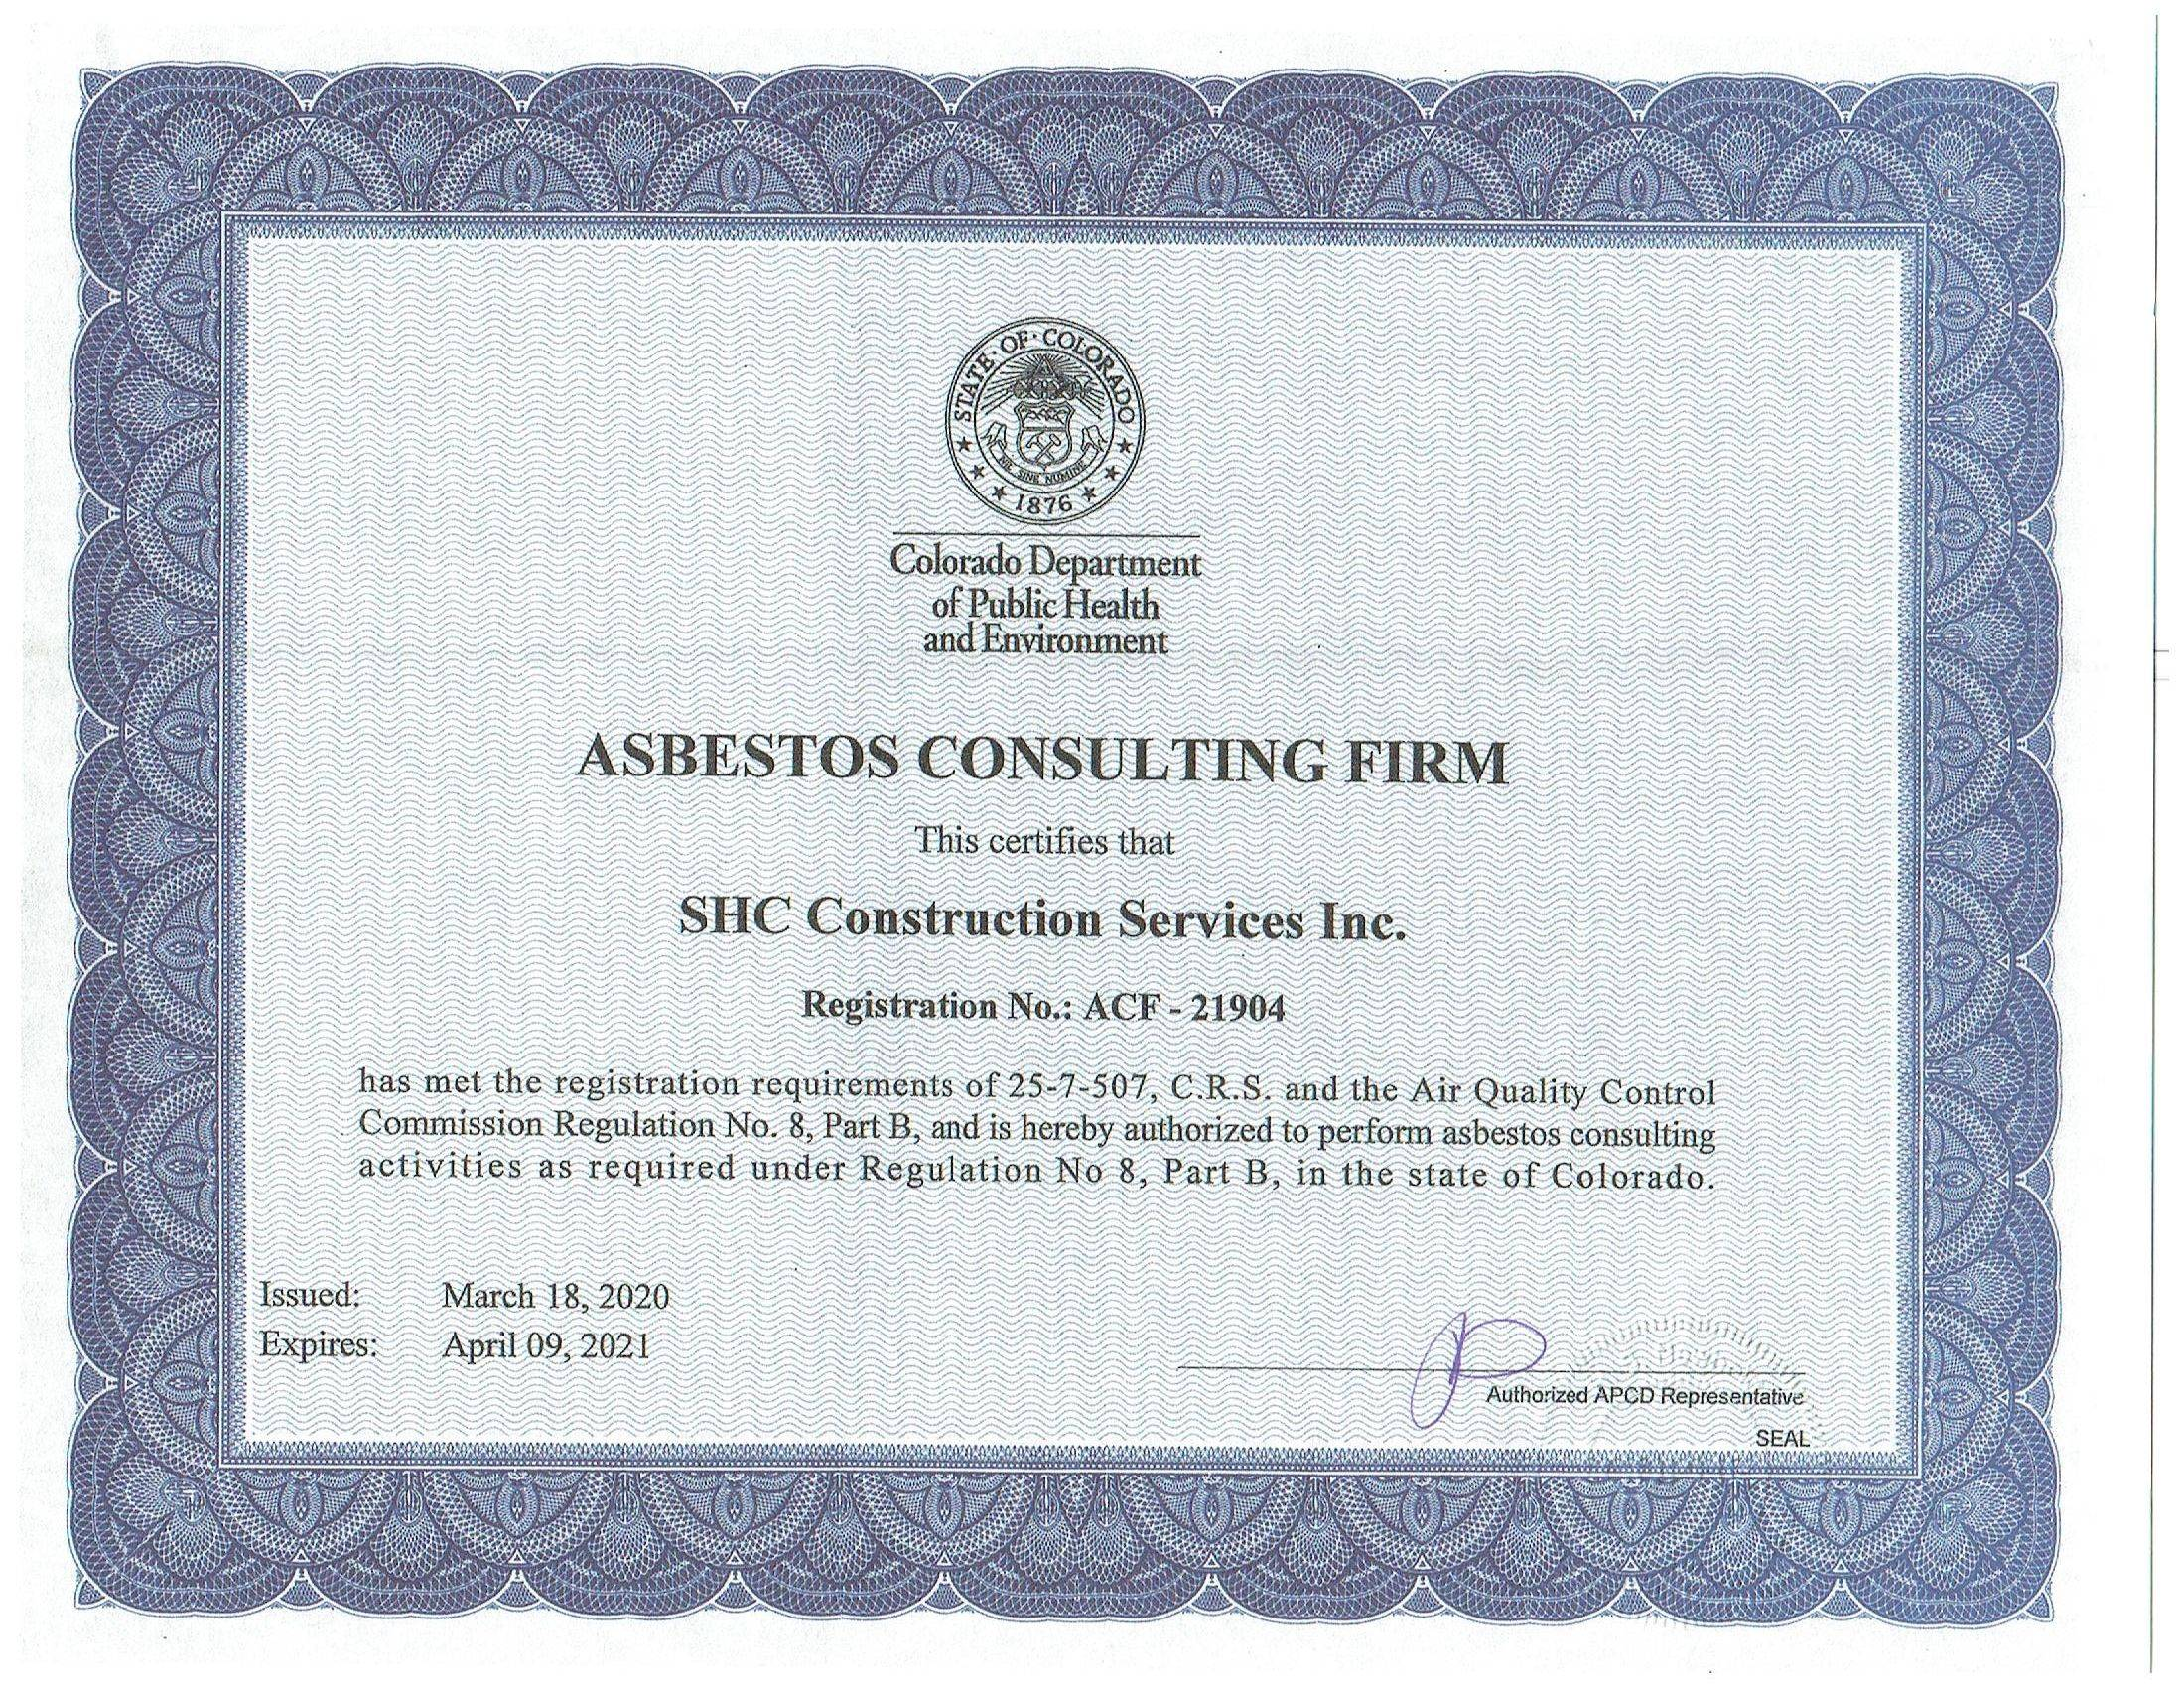 Asbestos Consulting Firm